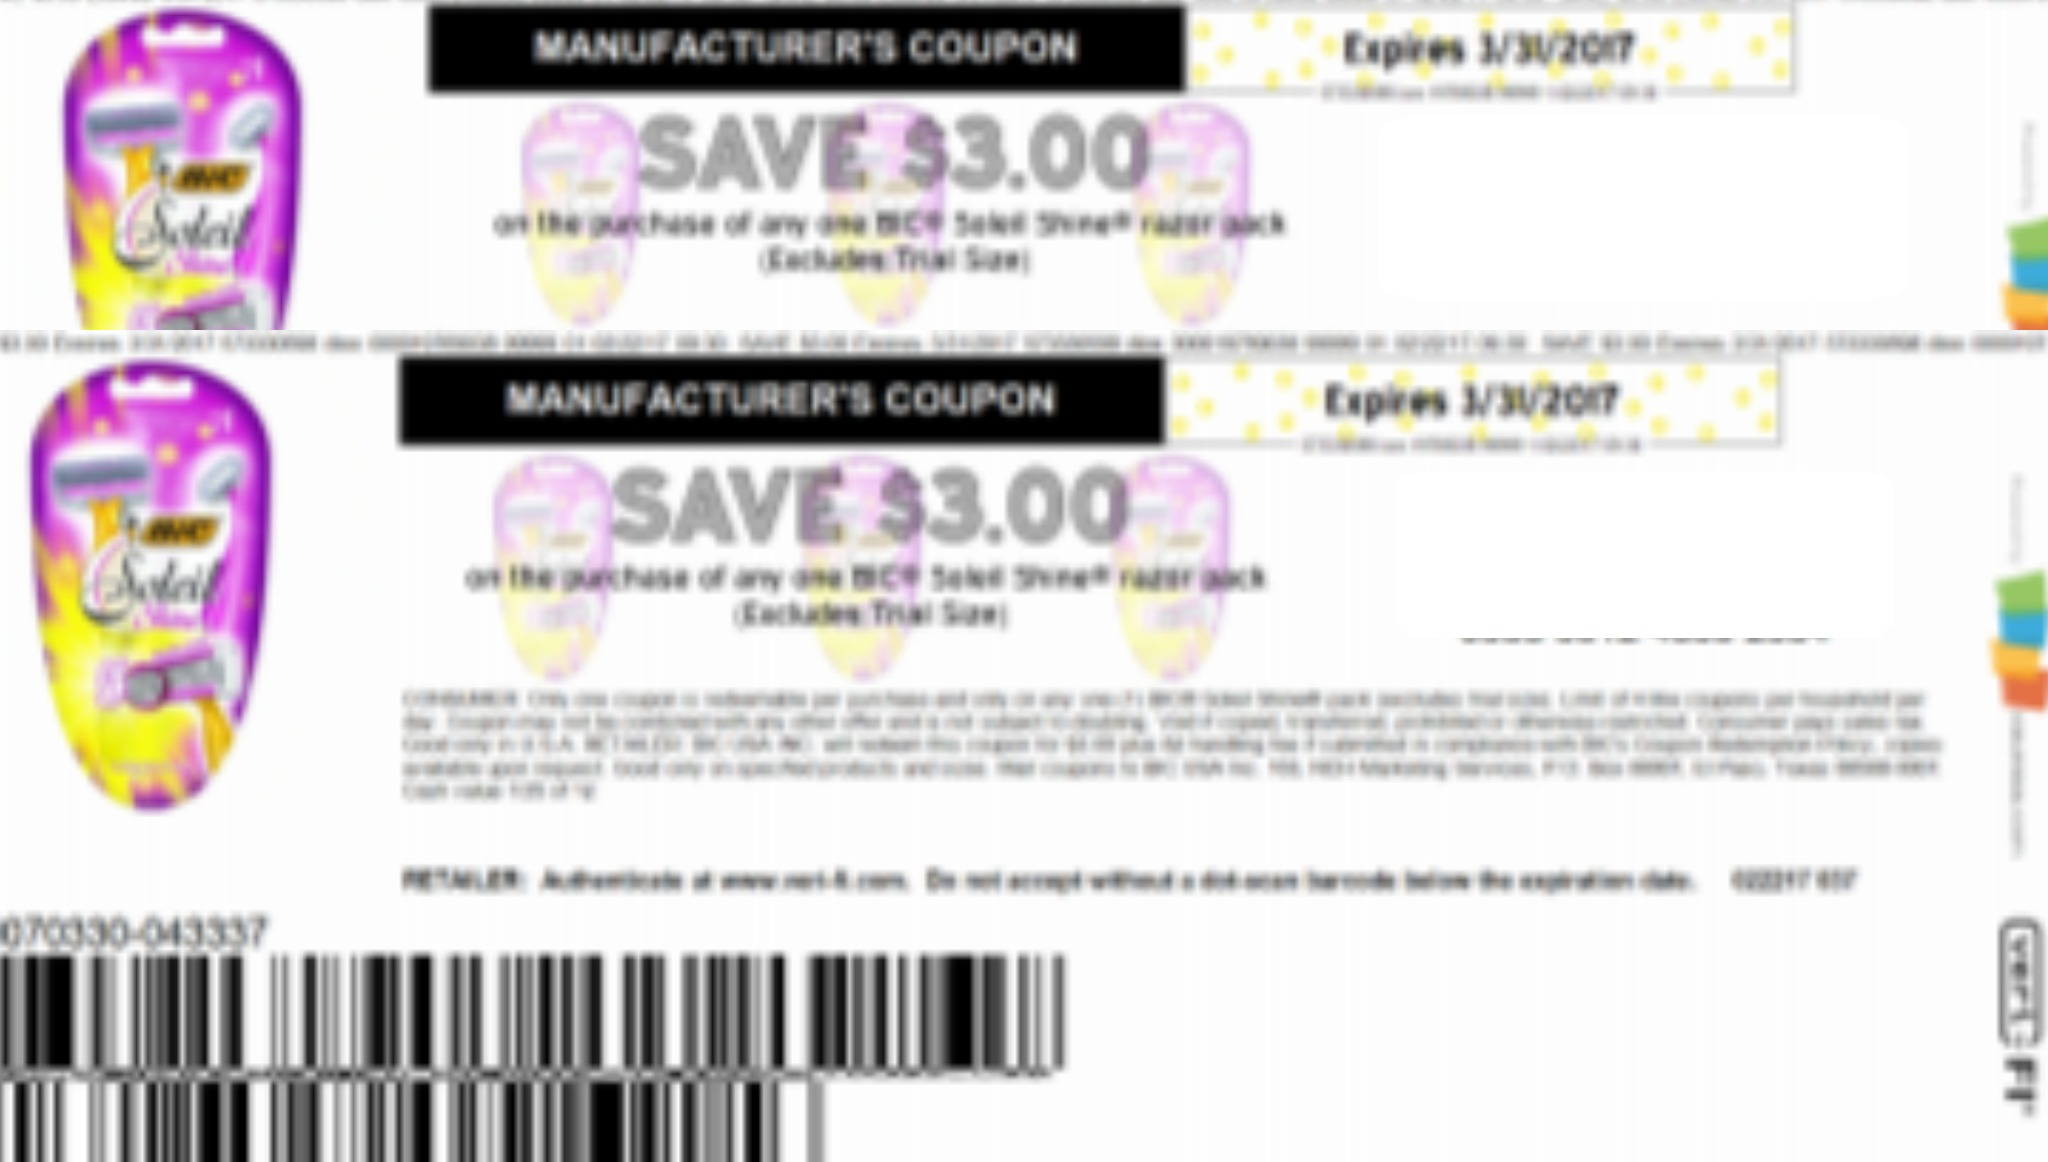 picture regarding Bic Razor Coupons Printable referred to as Click on in this article in direction of print Sizzling, fresh Bic Razor $3/1 coupon ⋆ Coupon